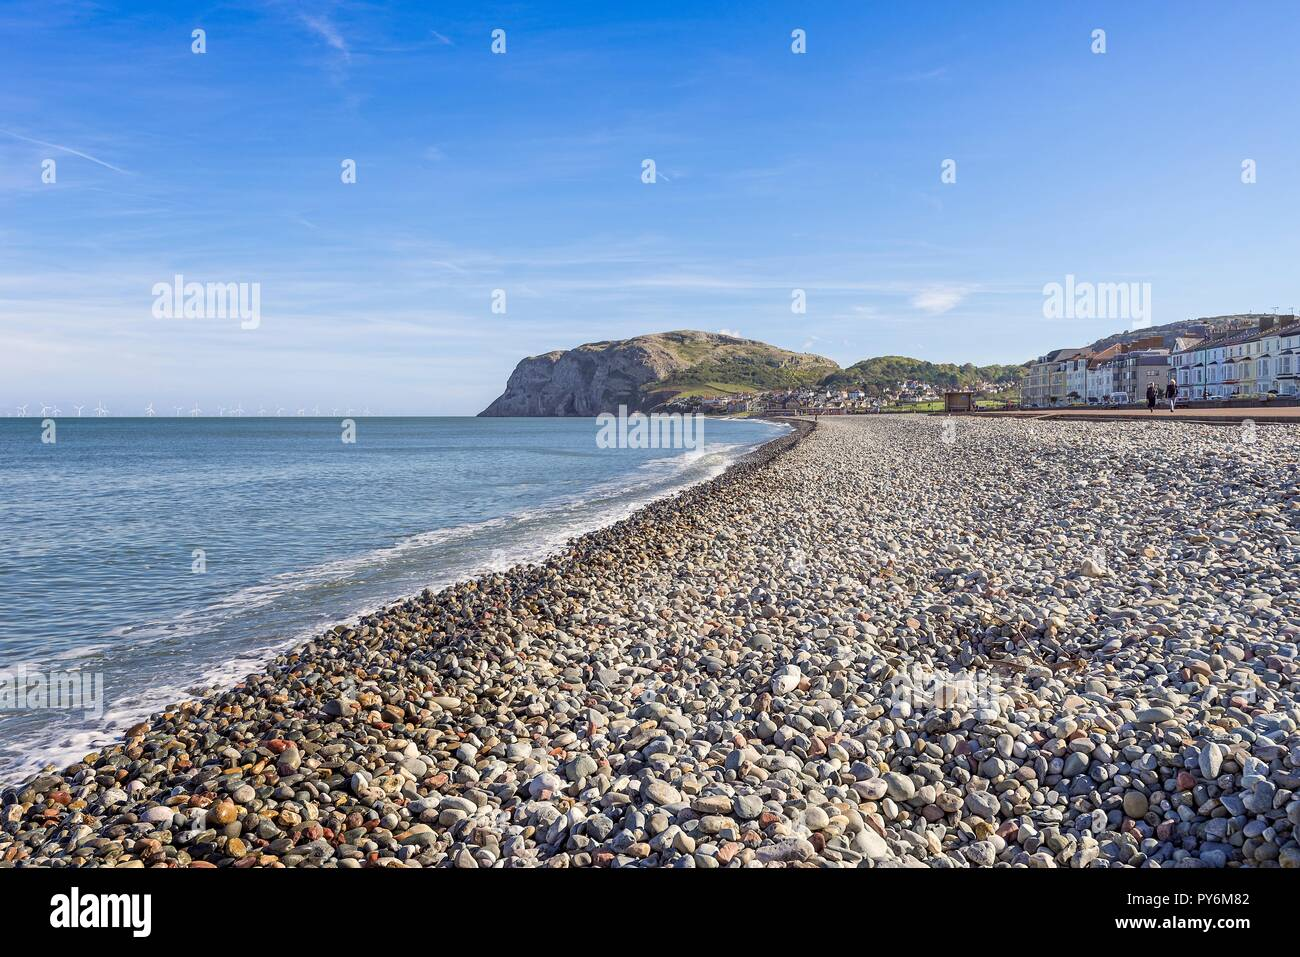 A view of Llandudno's curving shoreline with houses nested by a headland. The Little Orme is in the distance and a blue sky with clouds is above. Stock Photo